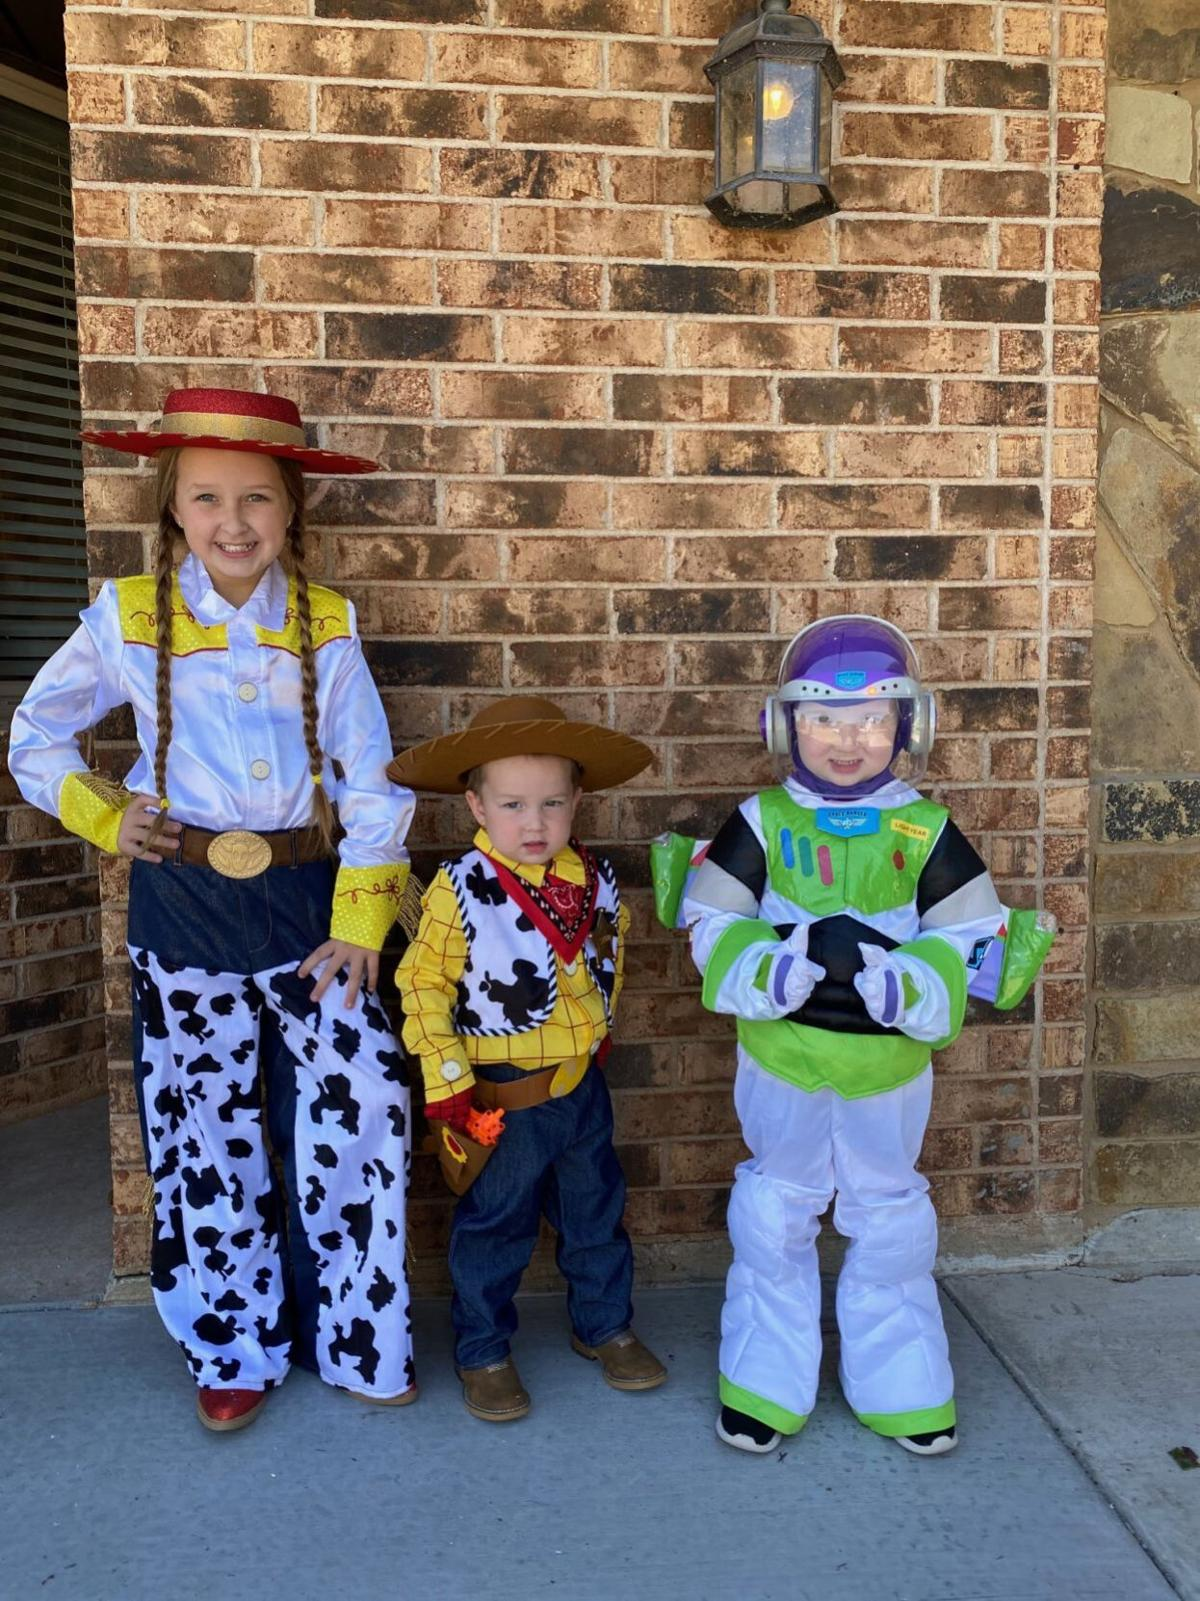 Wise kids dressed for Halloween